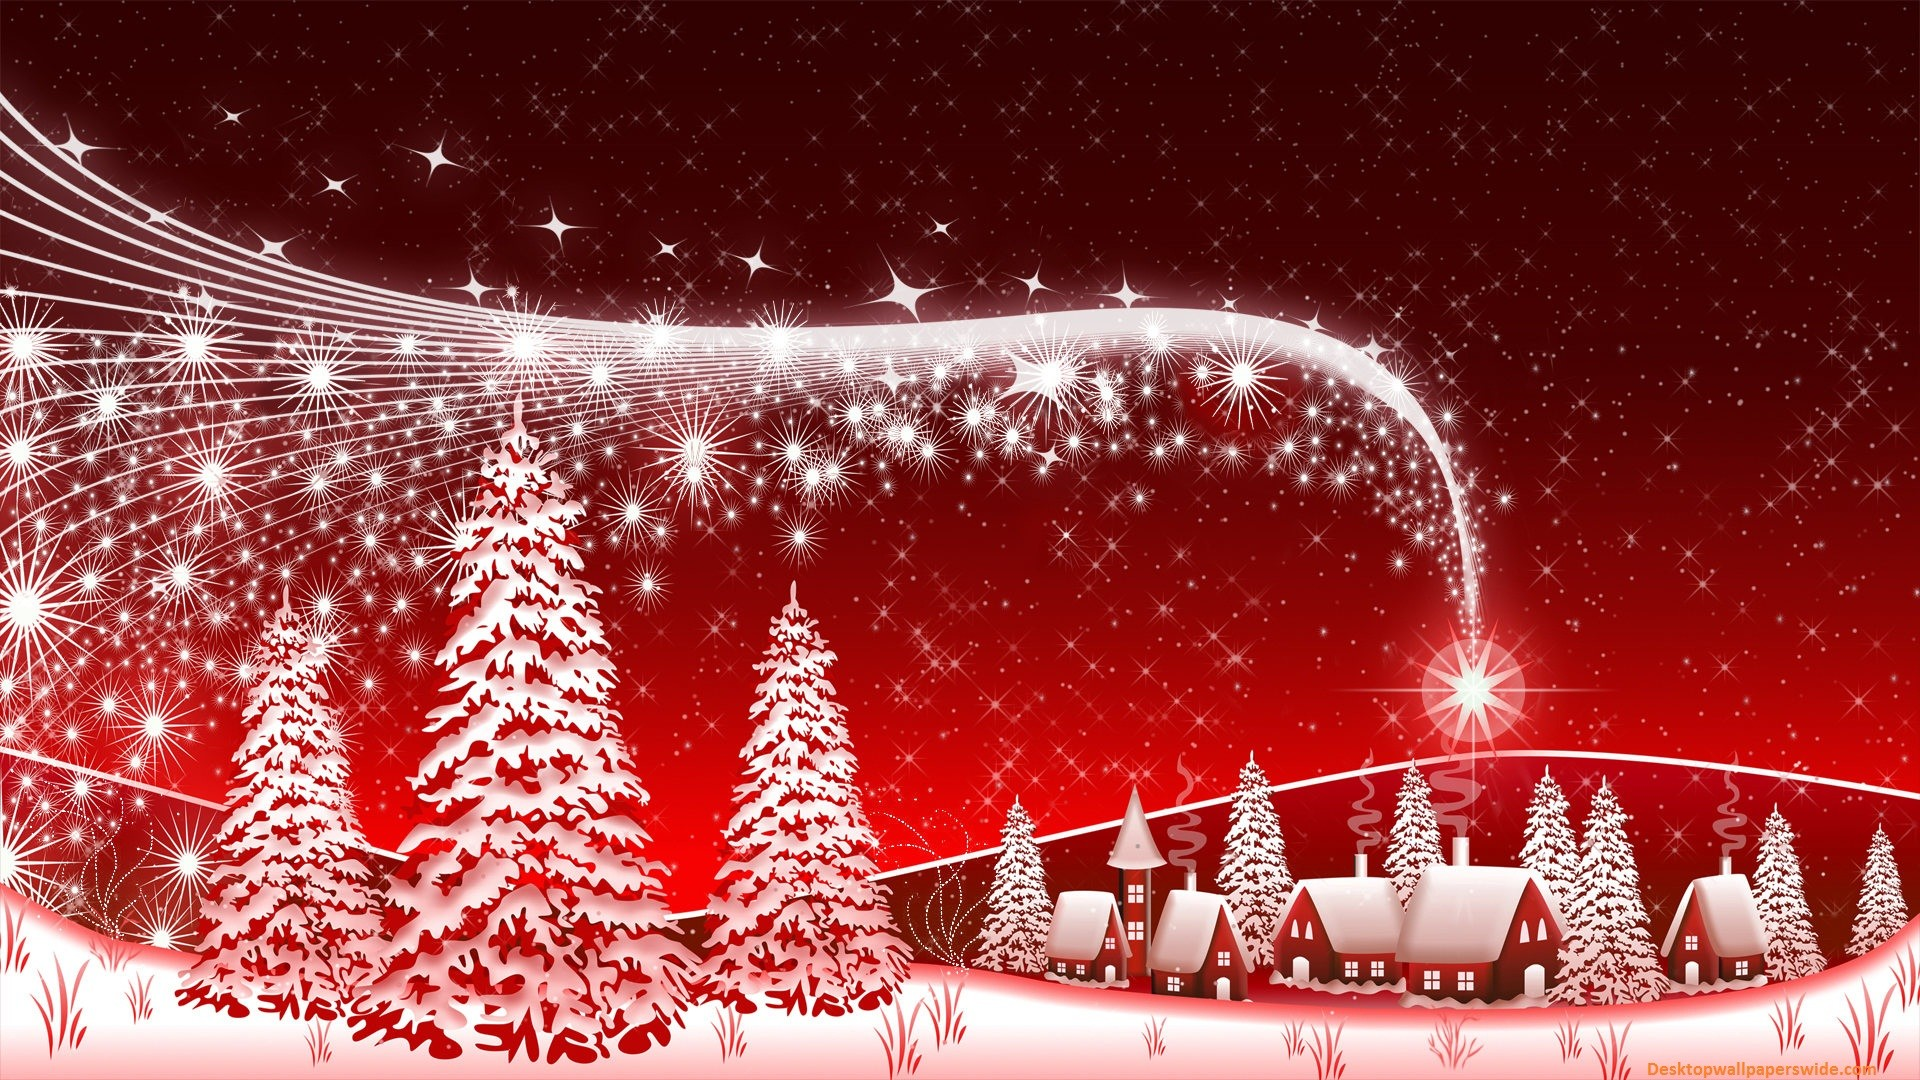 Animated Christmas Desktop Wallpaper (54+ images)